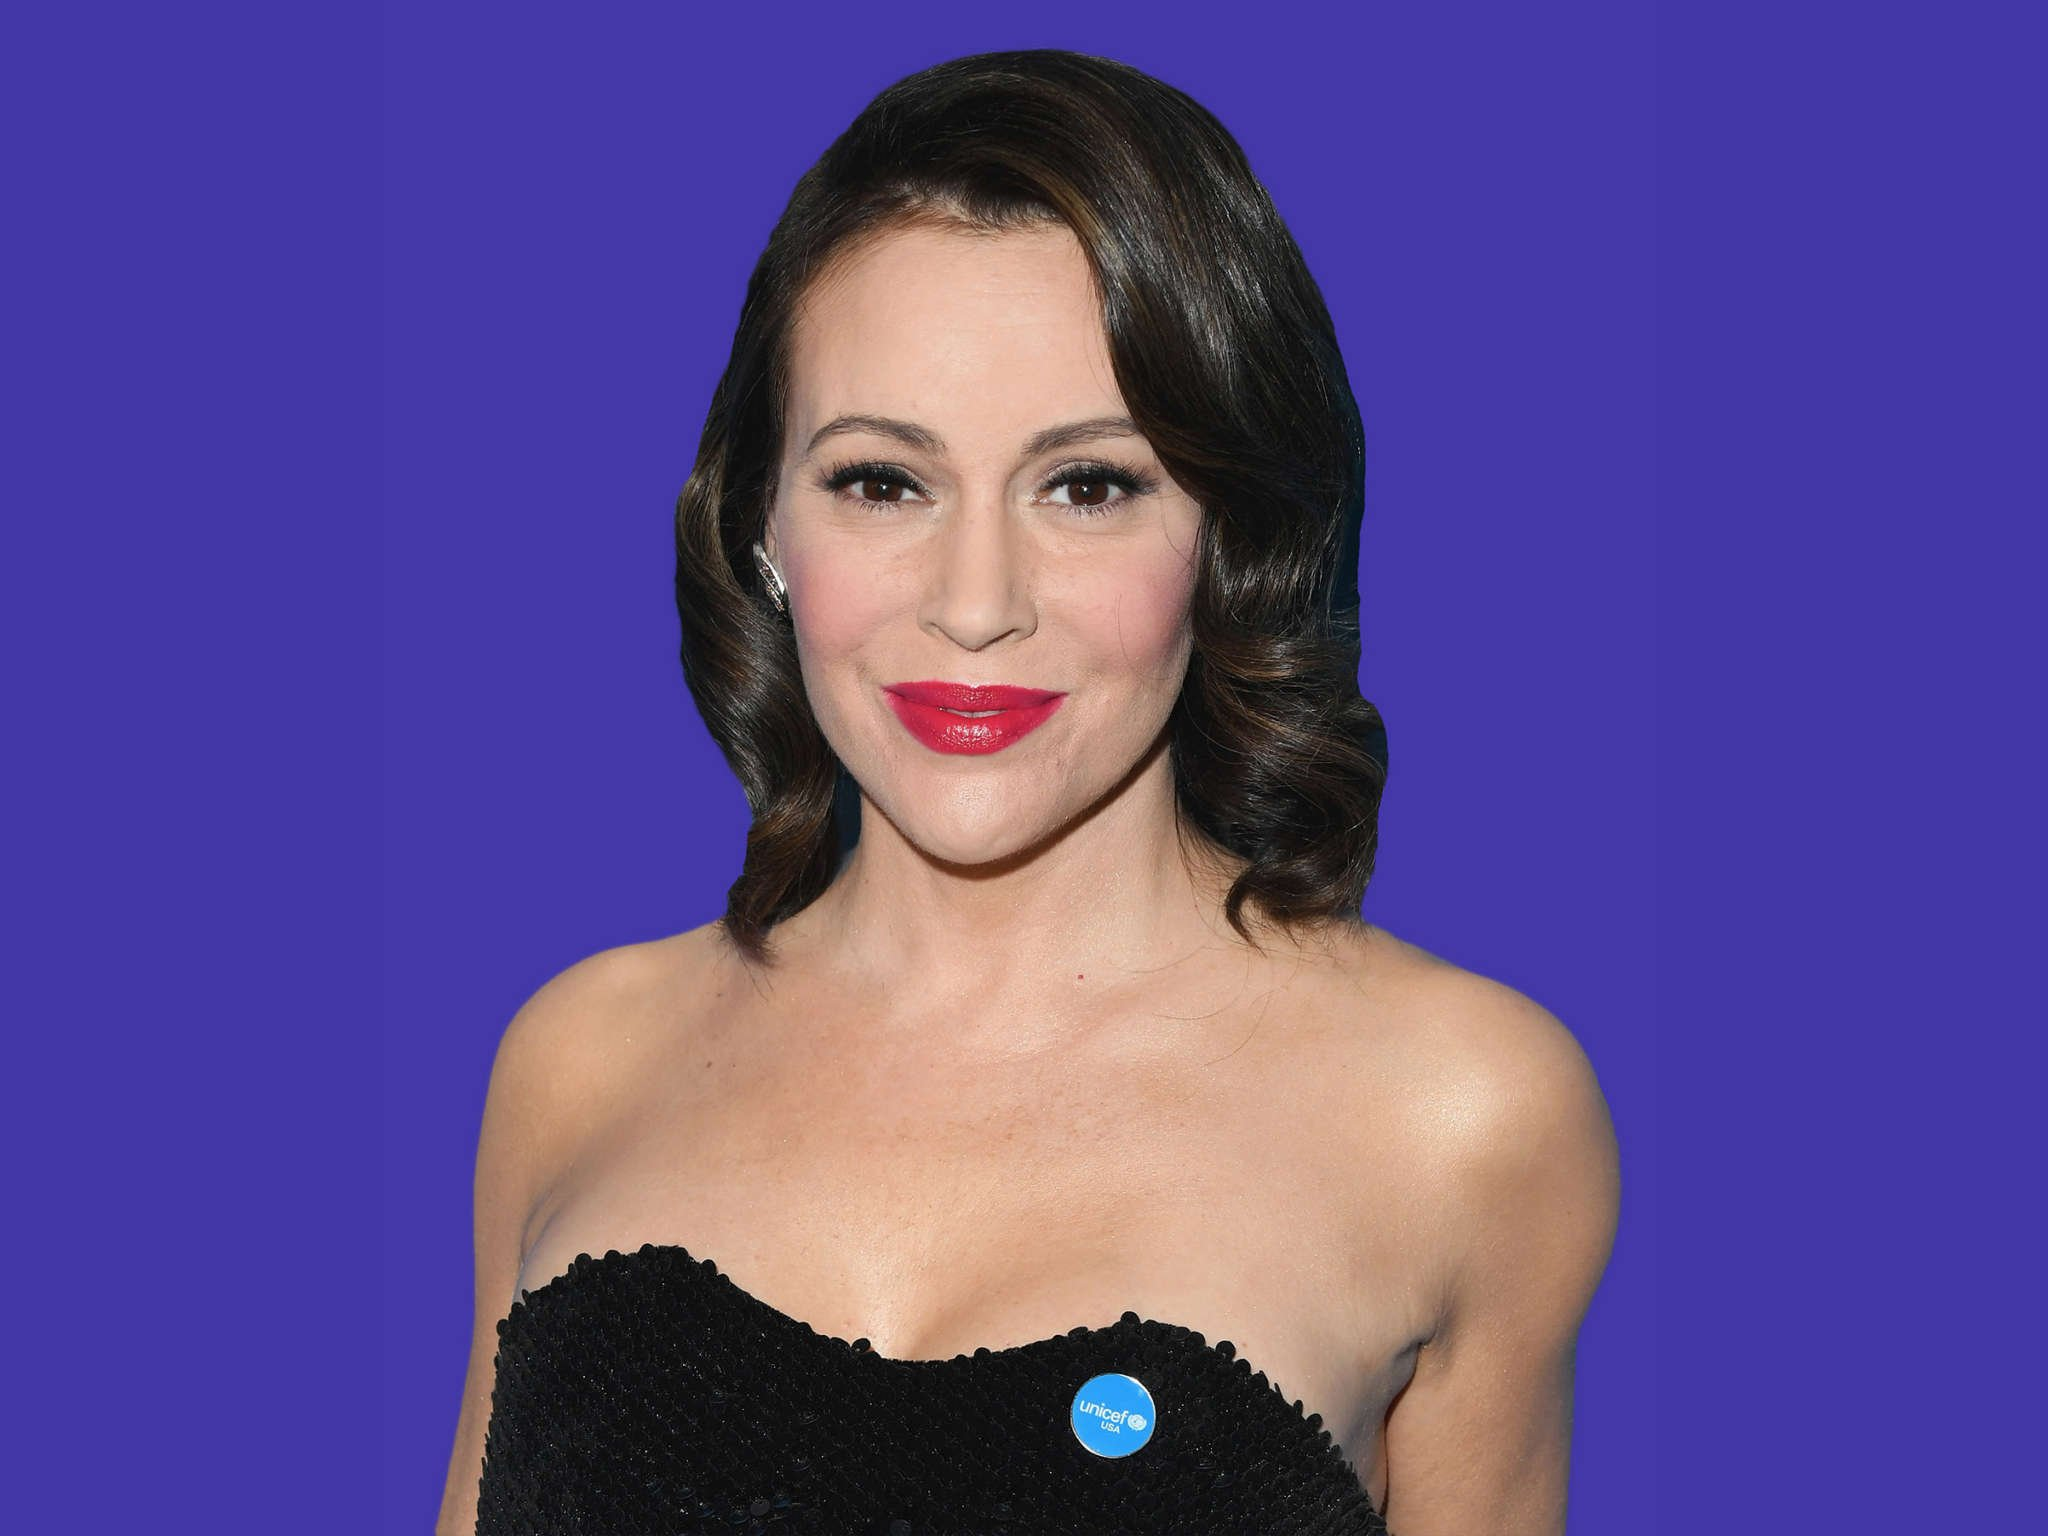 Alyssa Milano Reveals She's Still Struggling With Terrible Symptoms After COVID-19 Battle Including Extreme Hair Loss And 'Brain Fog!'